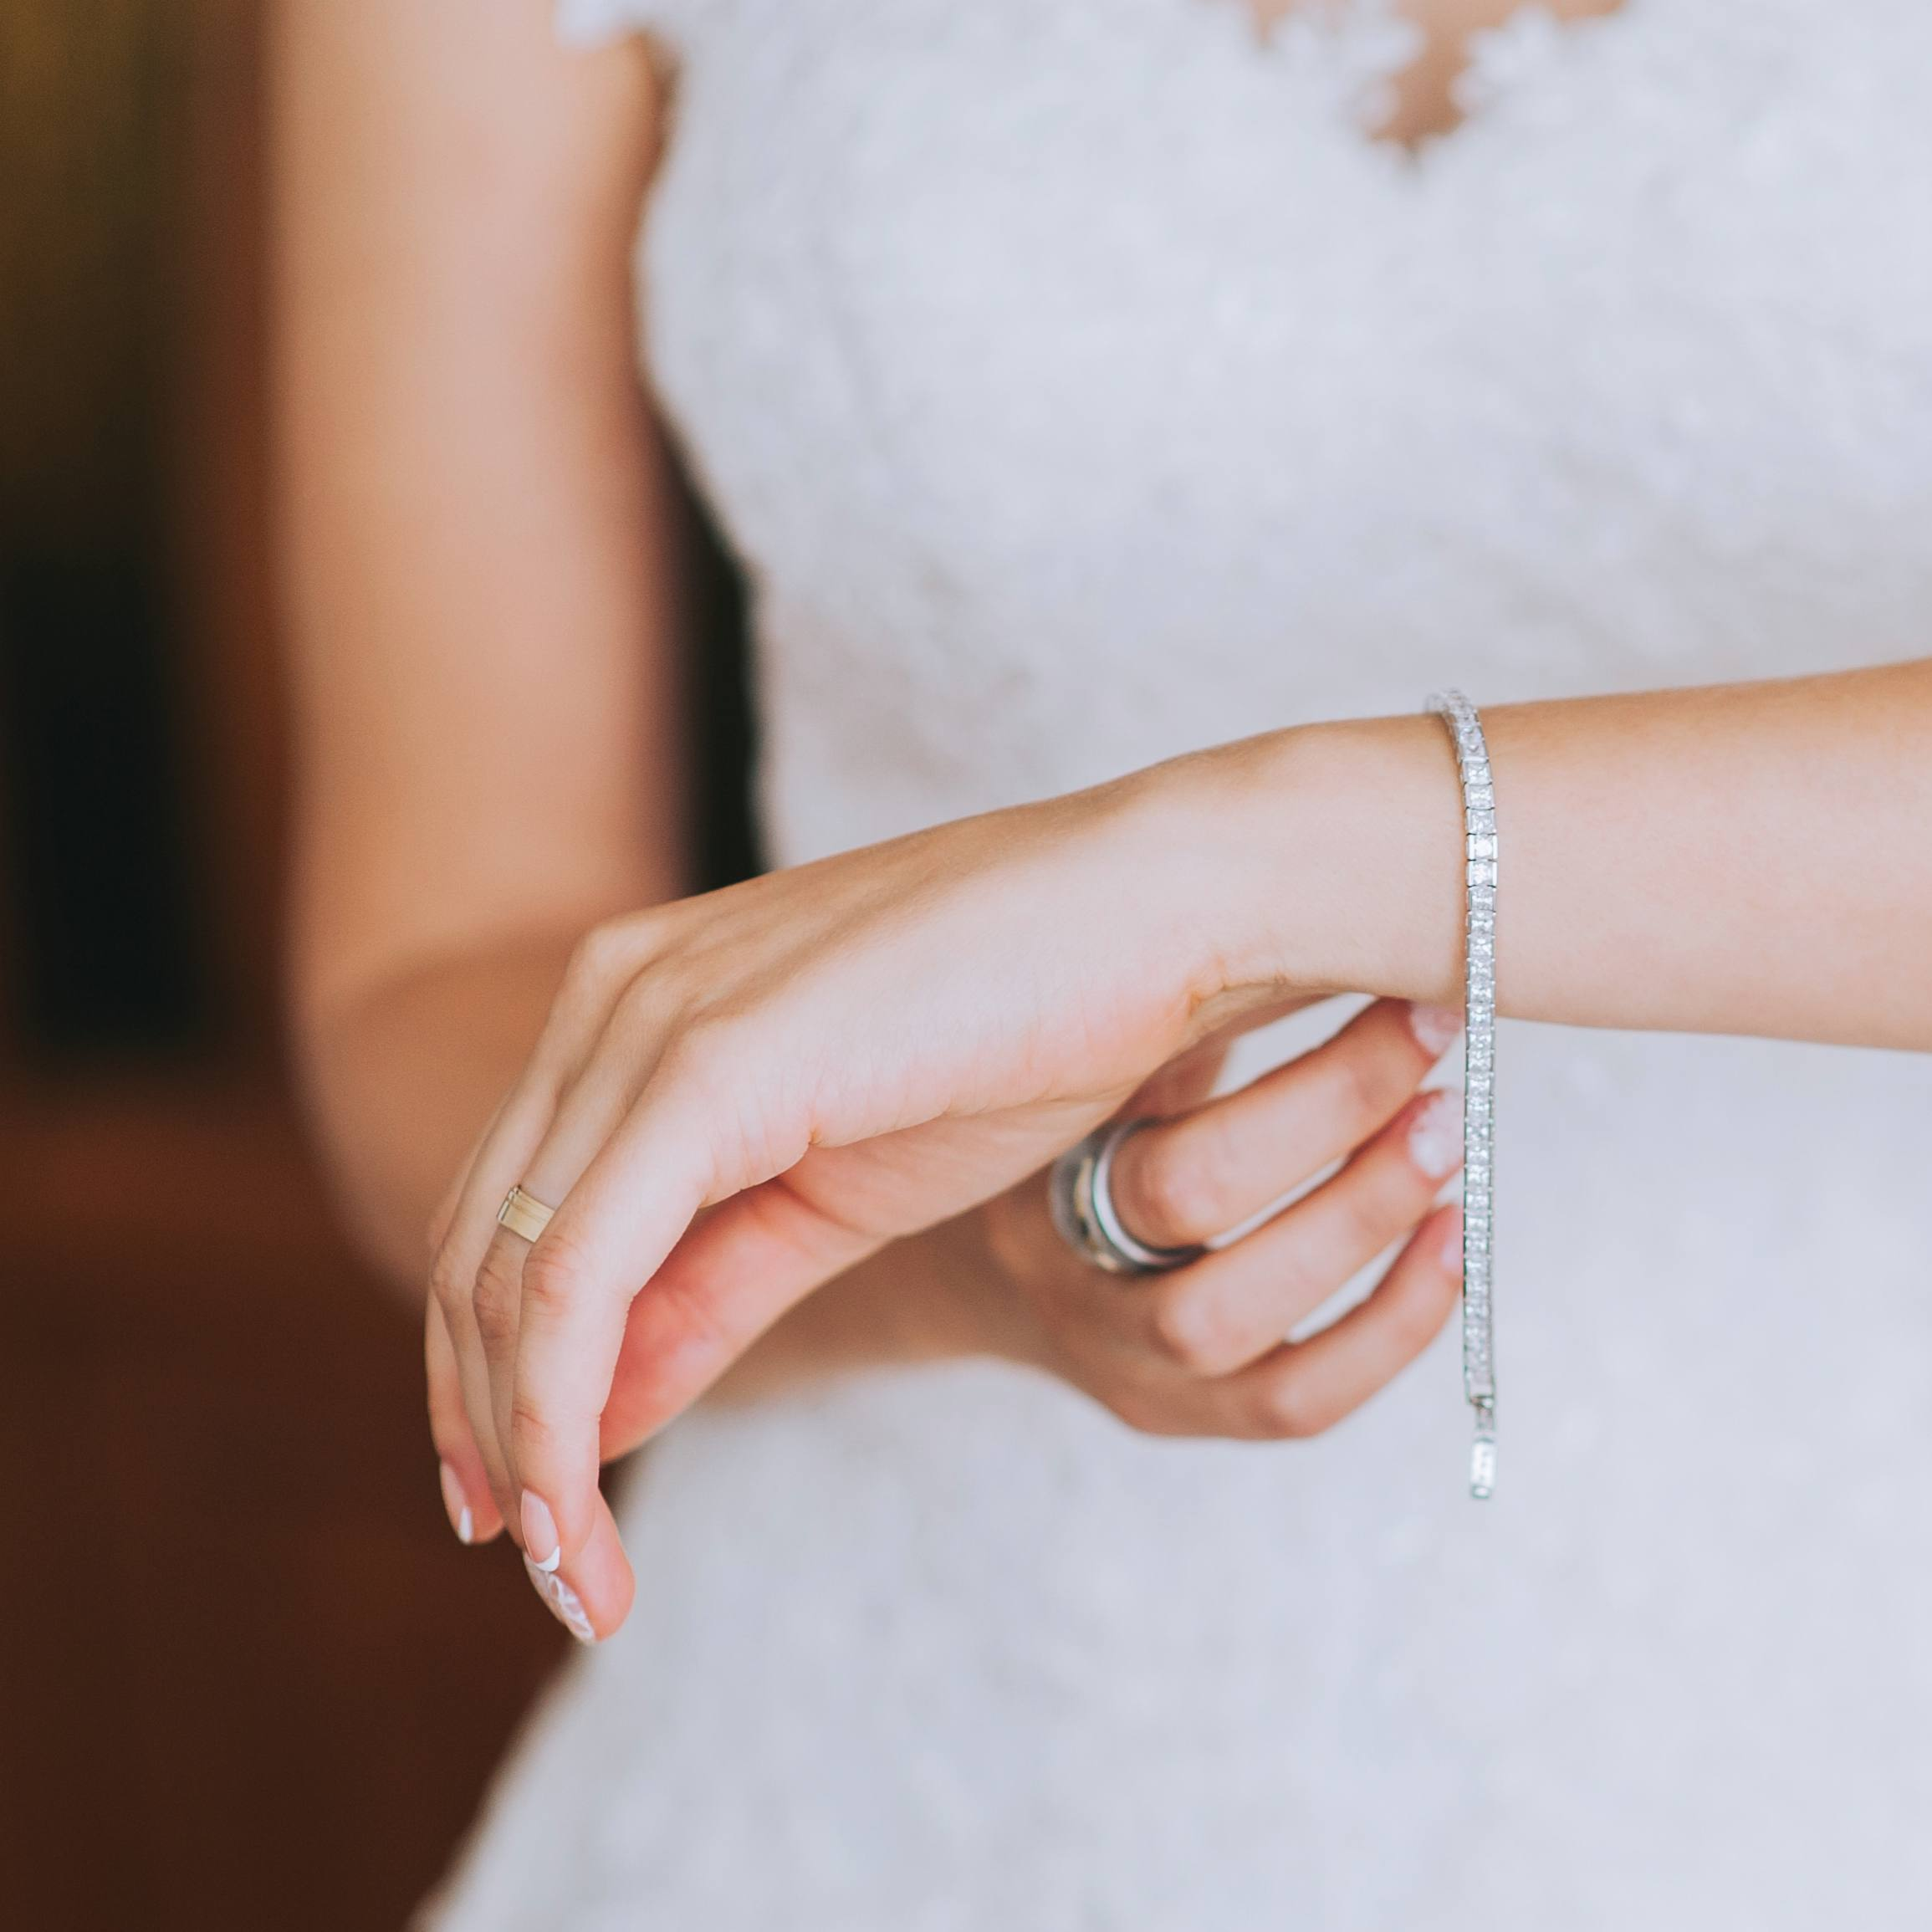 a bride in a wedding dress putting on her jewelry, a diamond bracelet on her wrist